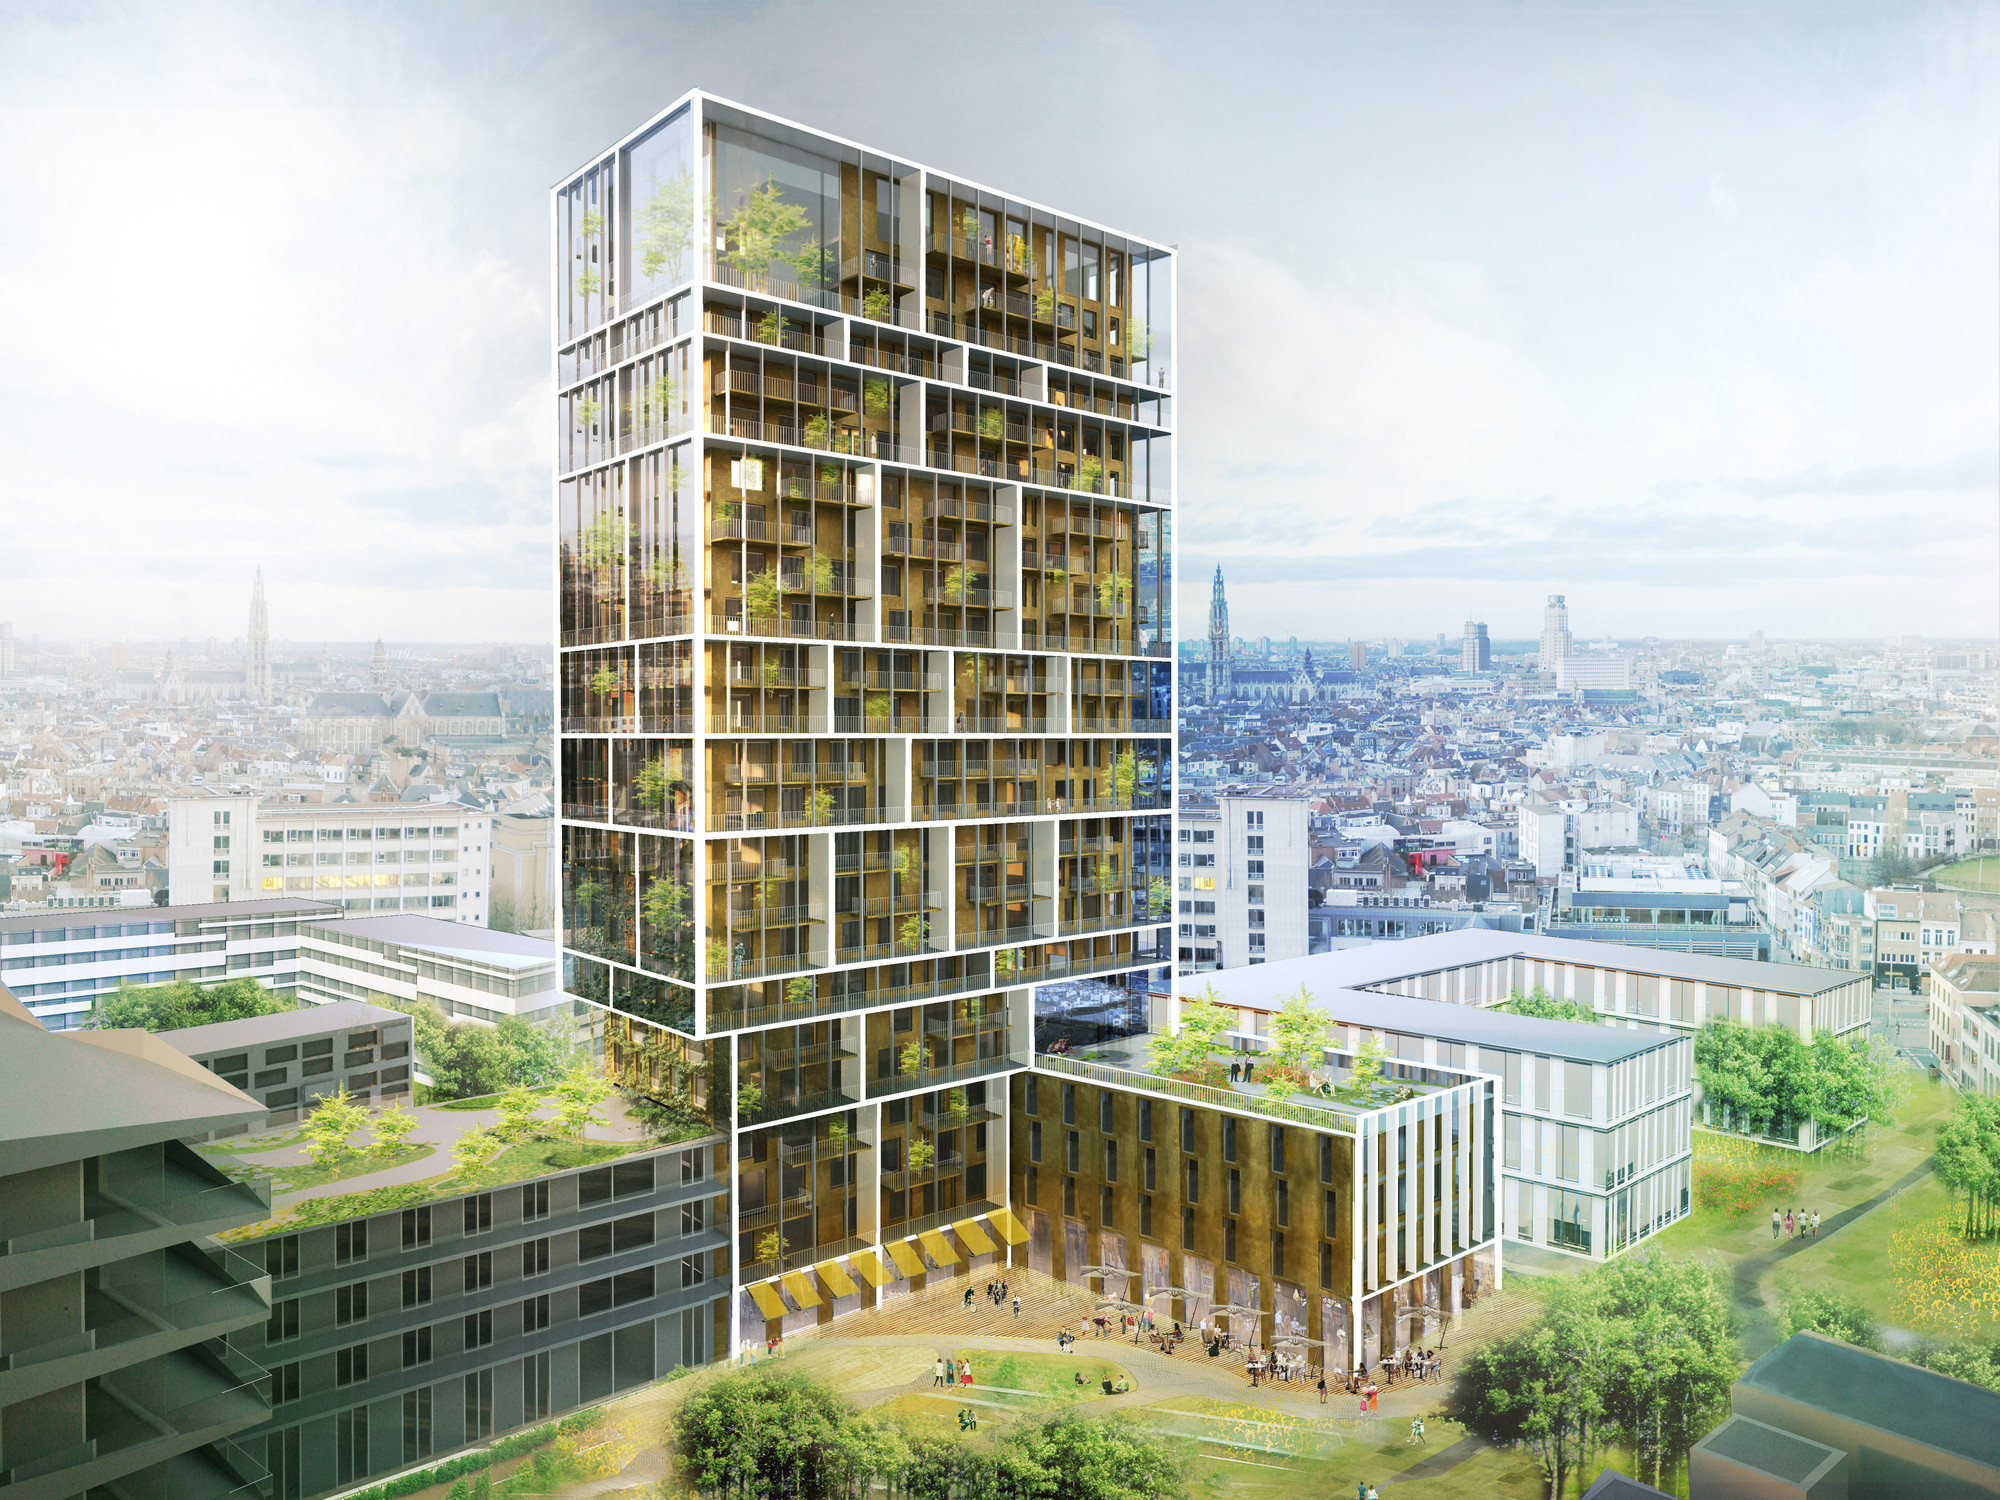 C f m ller chosen to design antwerp residential tower for Building design images